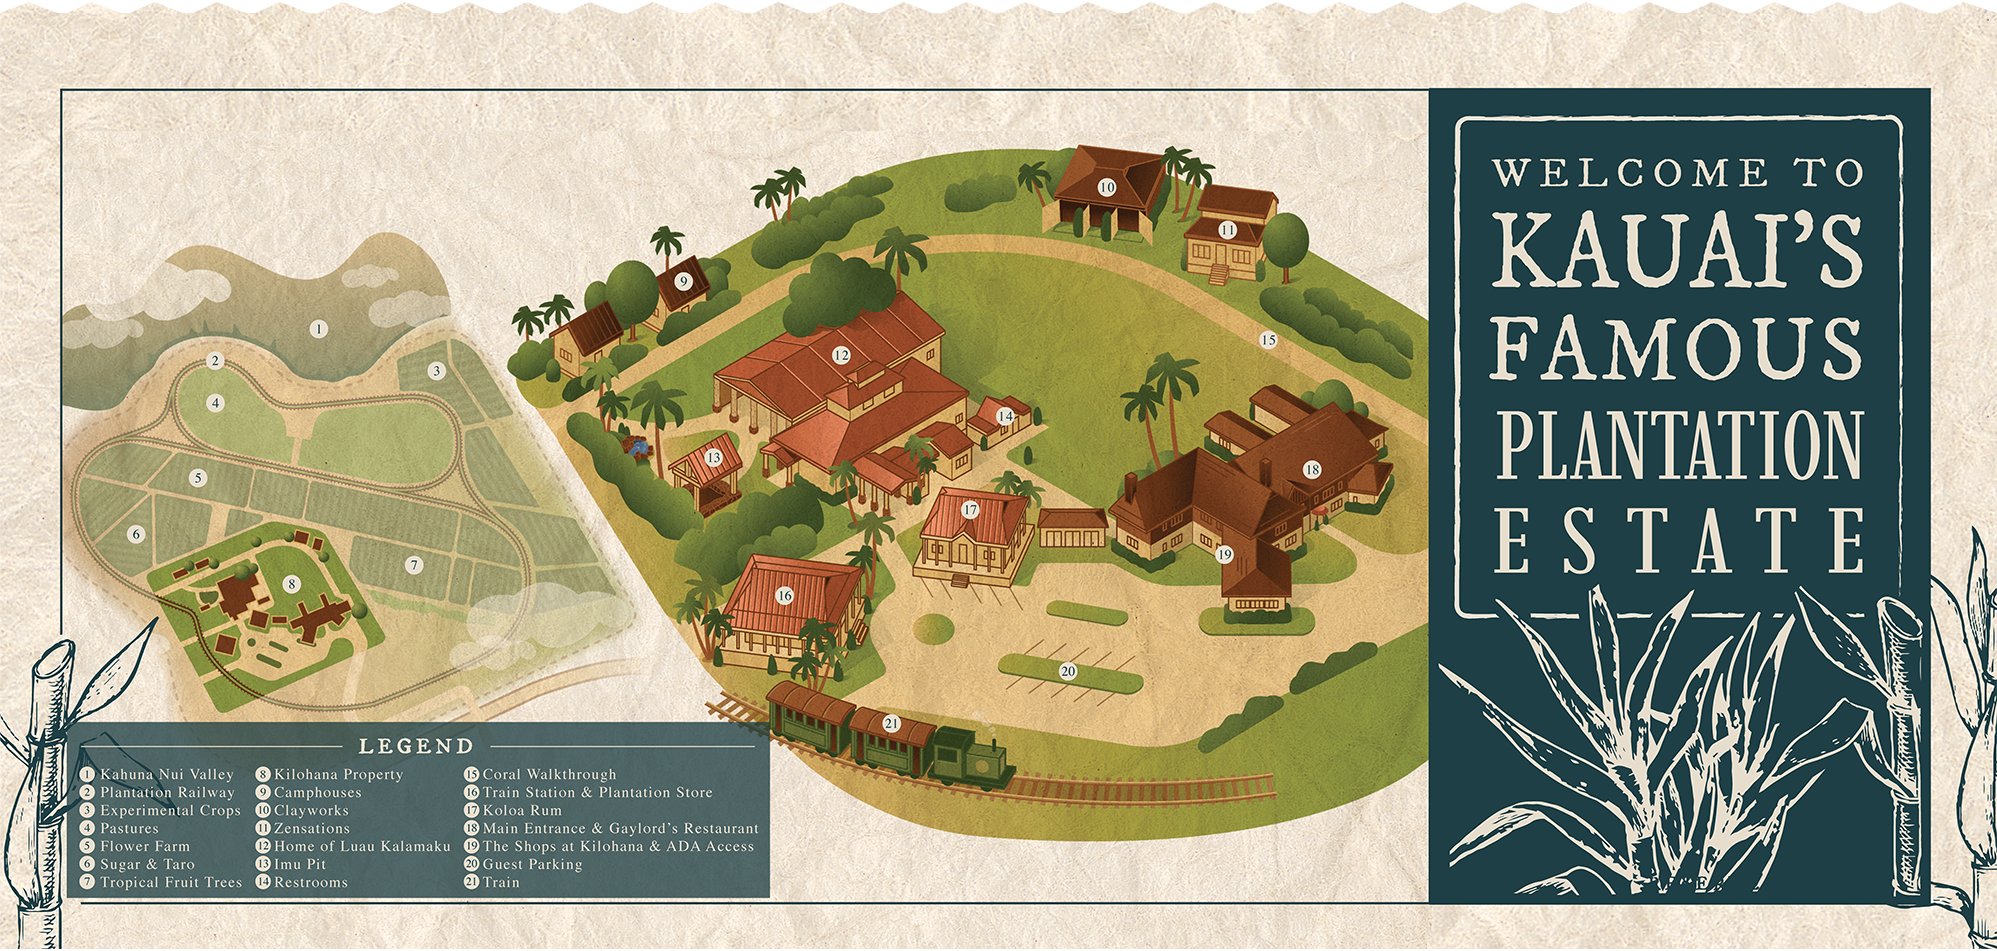 A map of kilohana plantation with a legend that shows where each activity is located